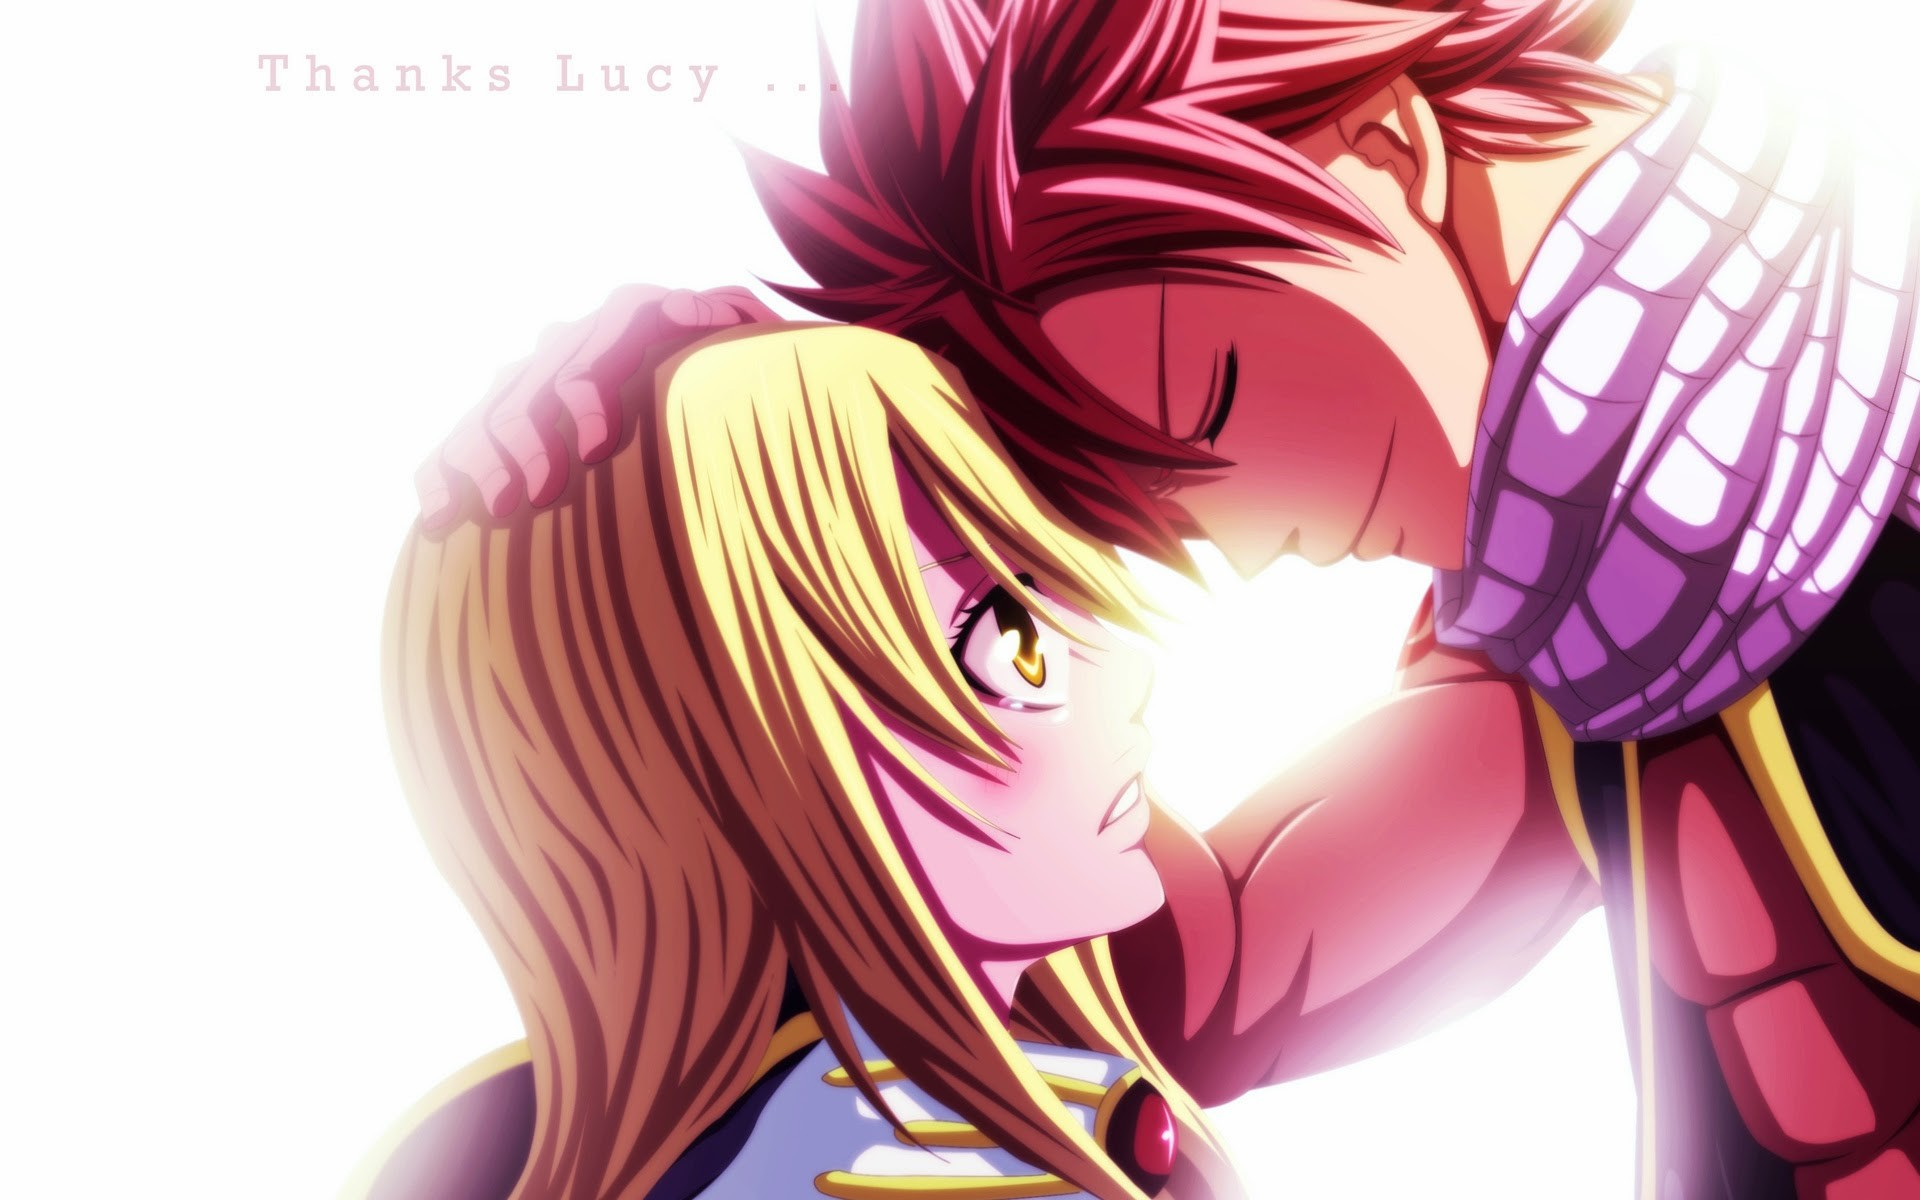 1920x1200 lucy heartfilia and natsu dragneel fairy tail anime hd wallpaper